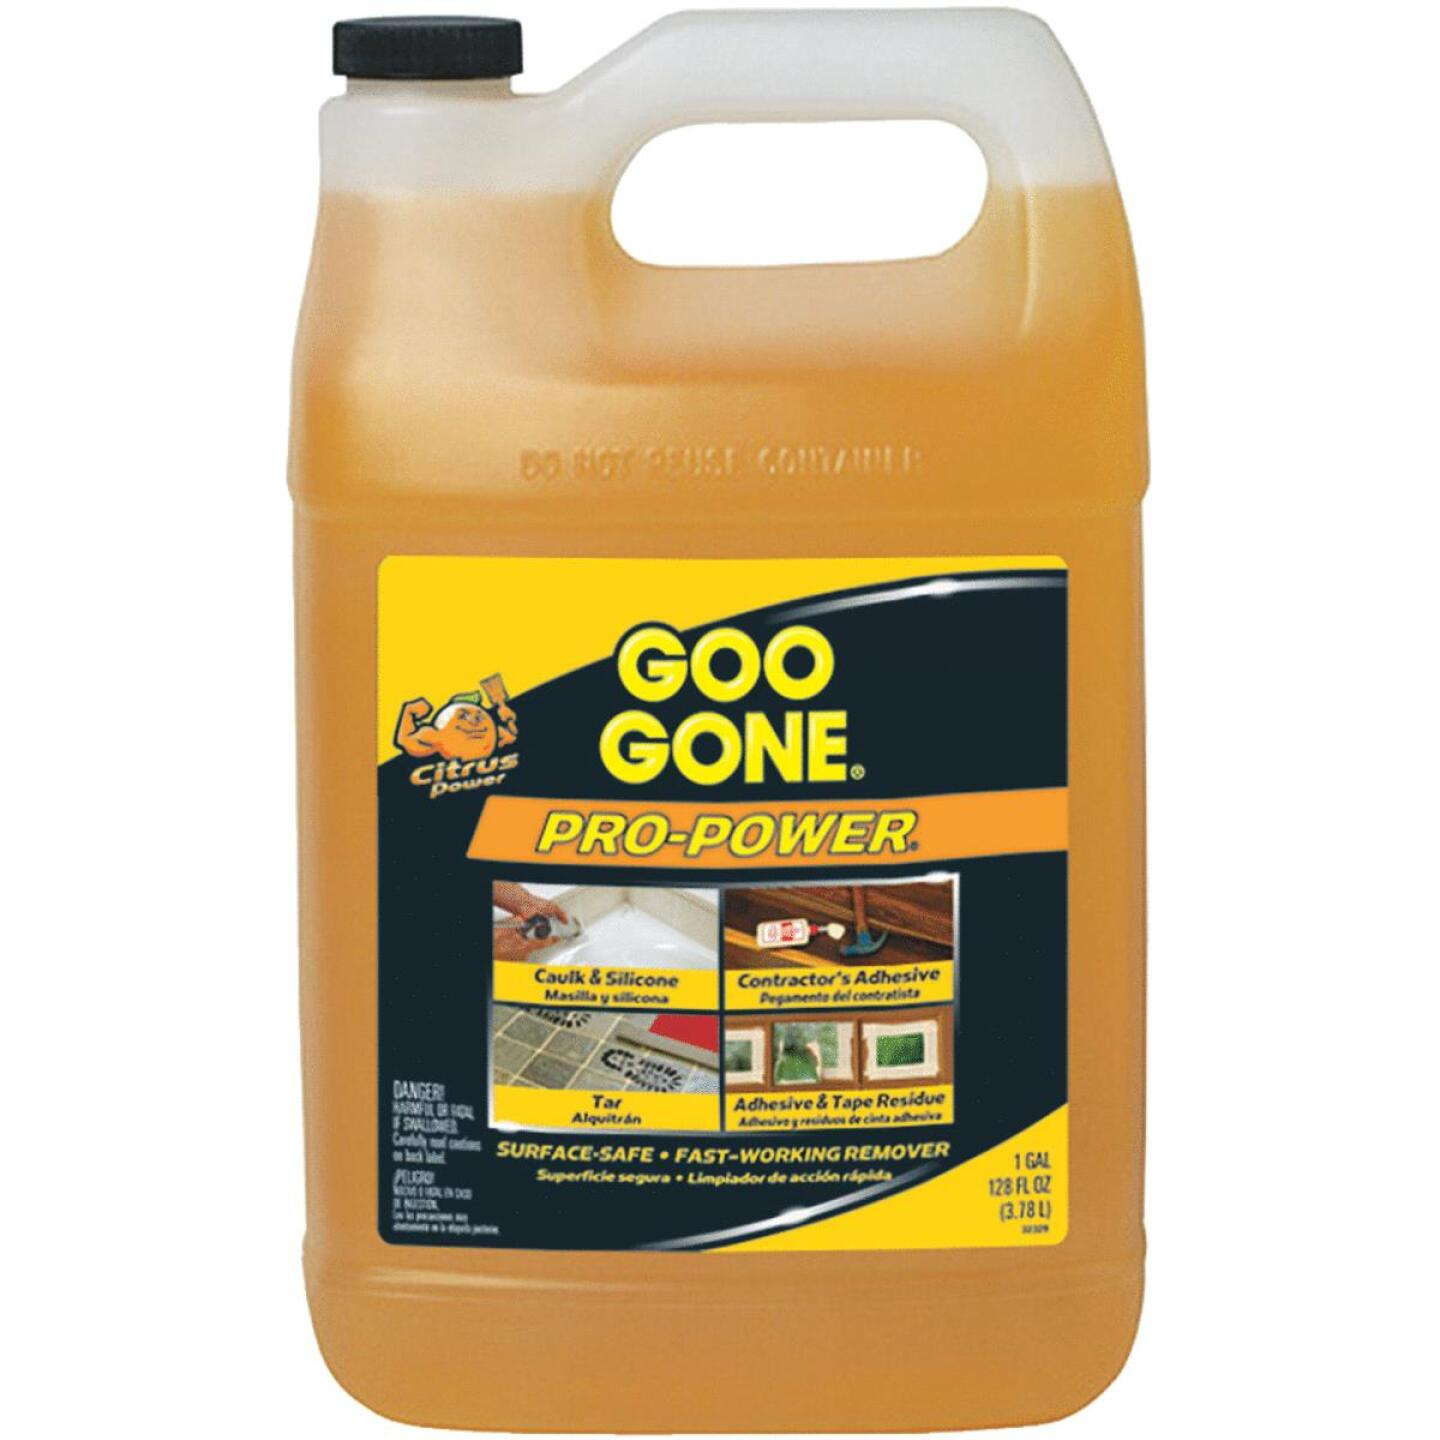 Goo Gone 1 Gal. Pro-Power Adhesive Remover Image 53